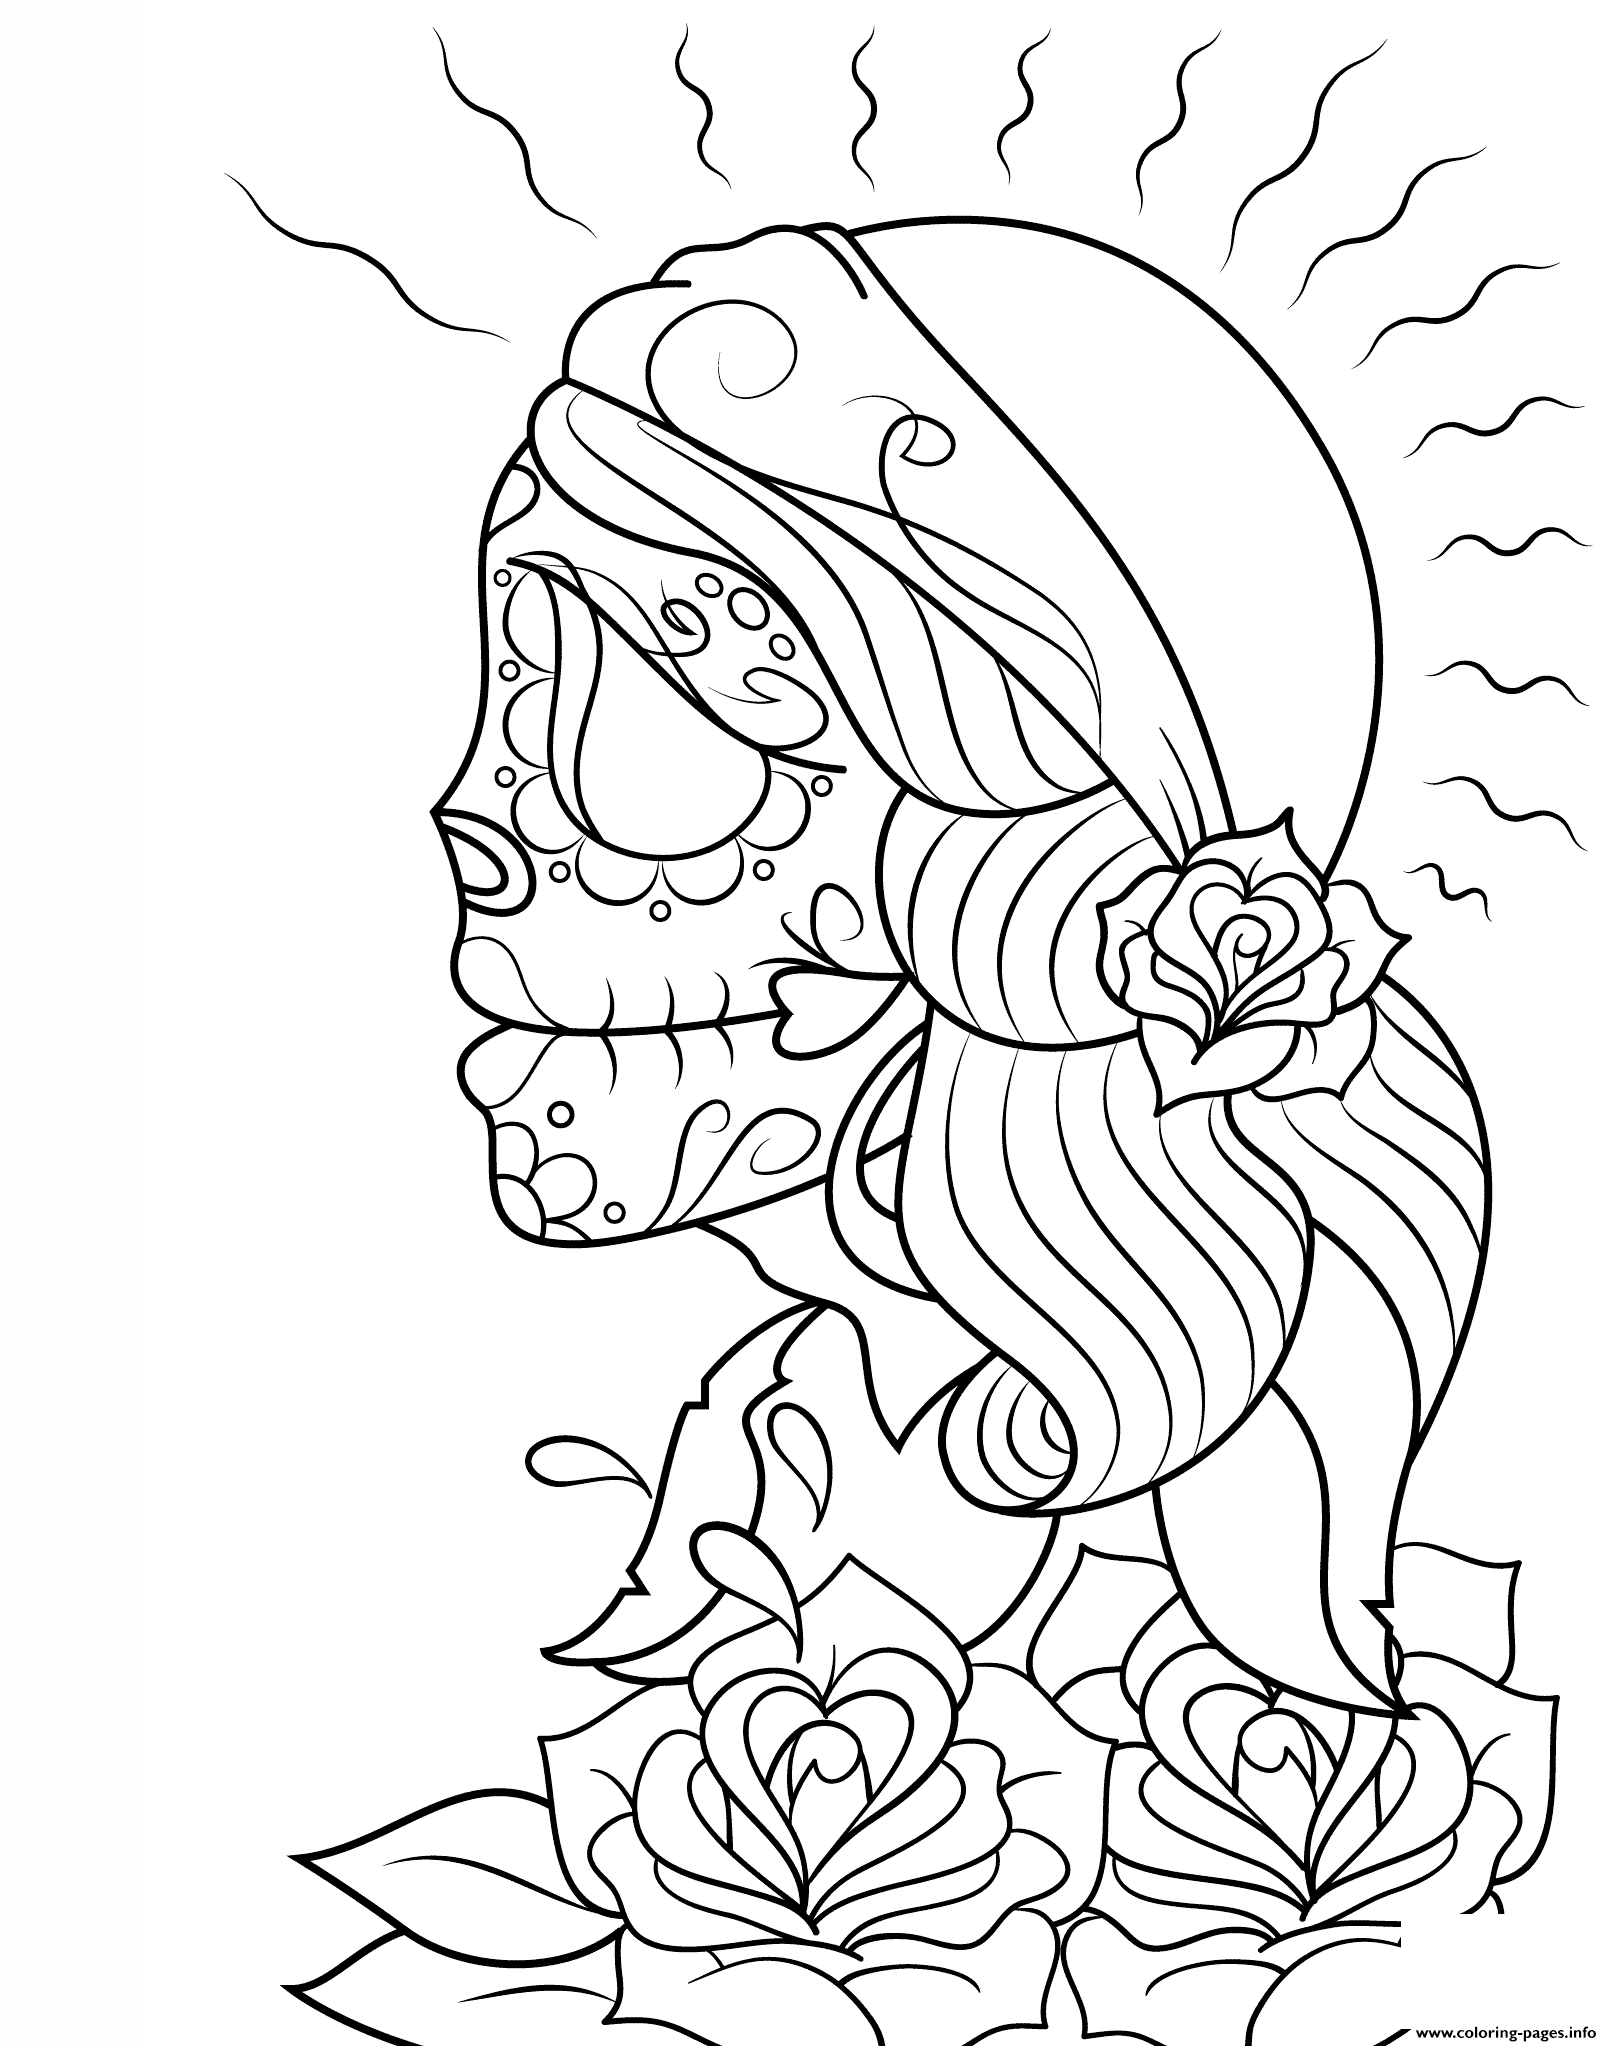 Print Day Of The Dead Gypsy By Asatorarise Calavera